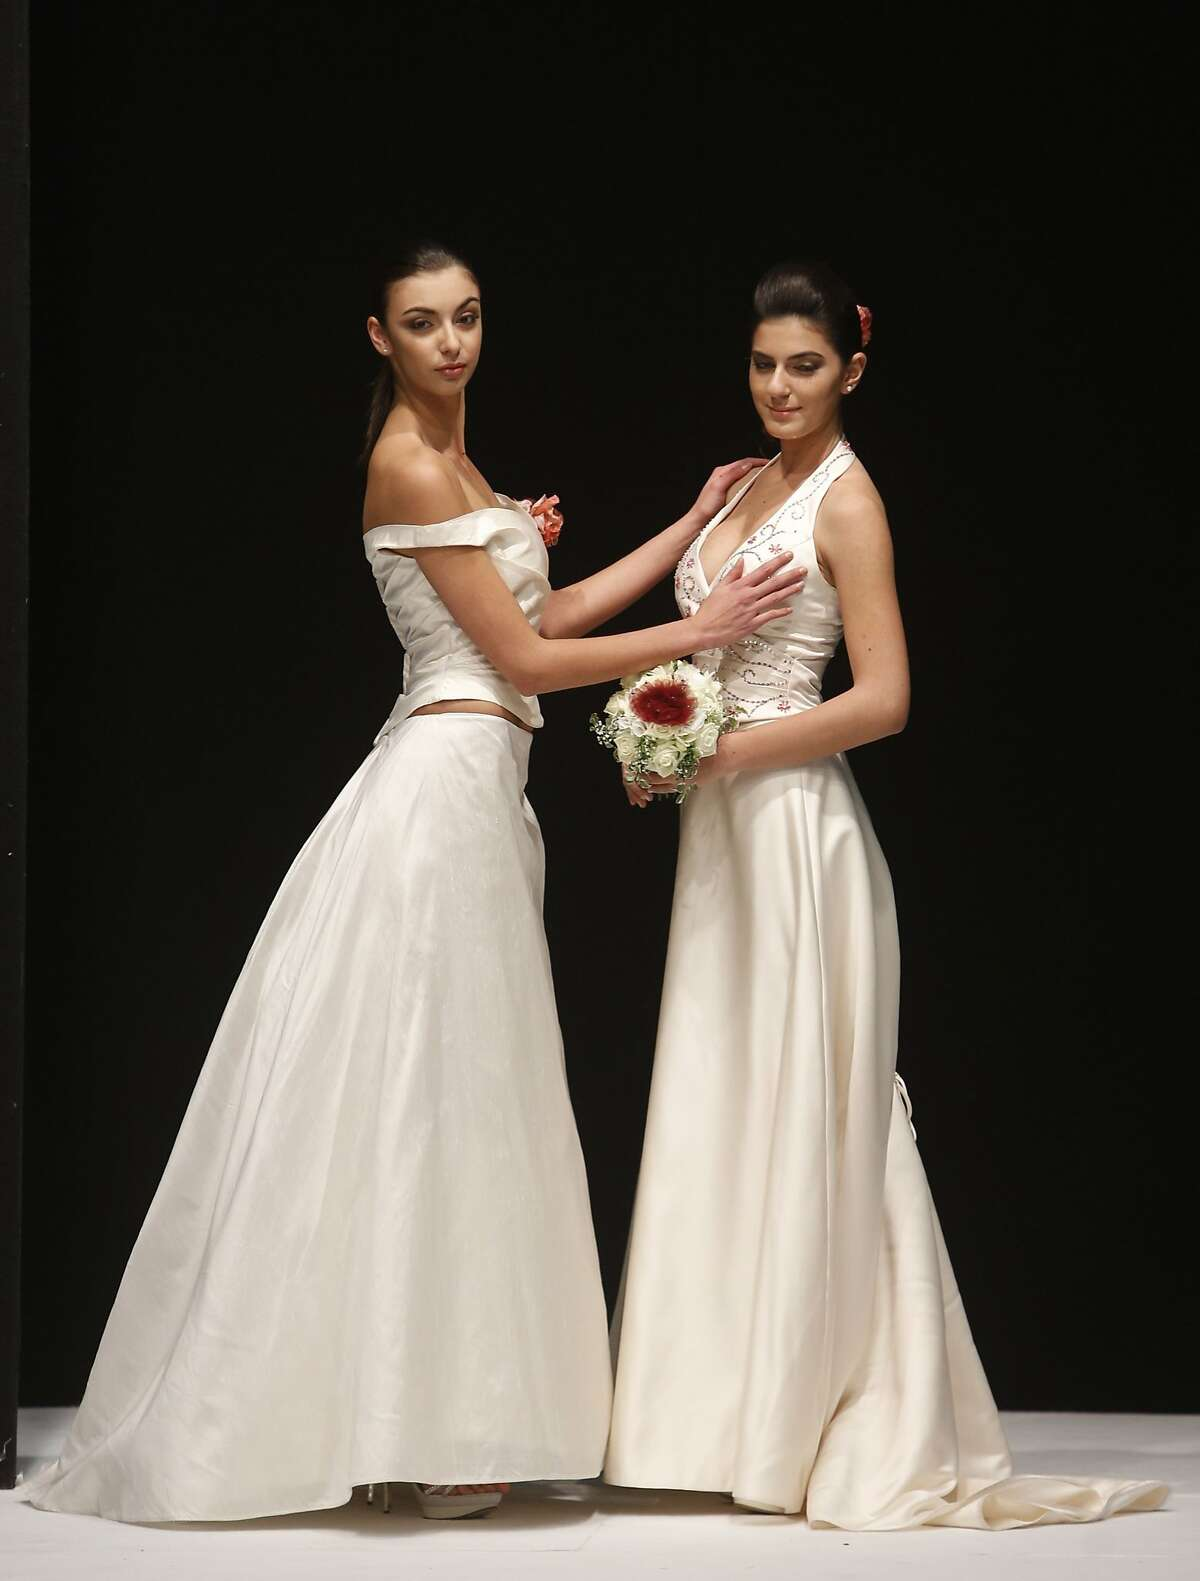 GAY WEDDING STYLE: Models show designs for same-sex couples during